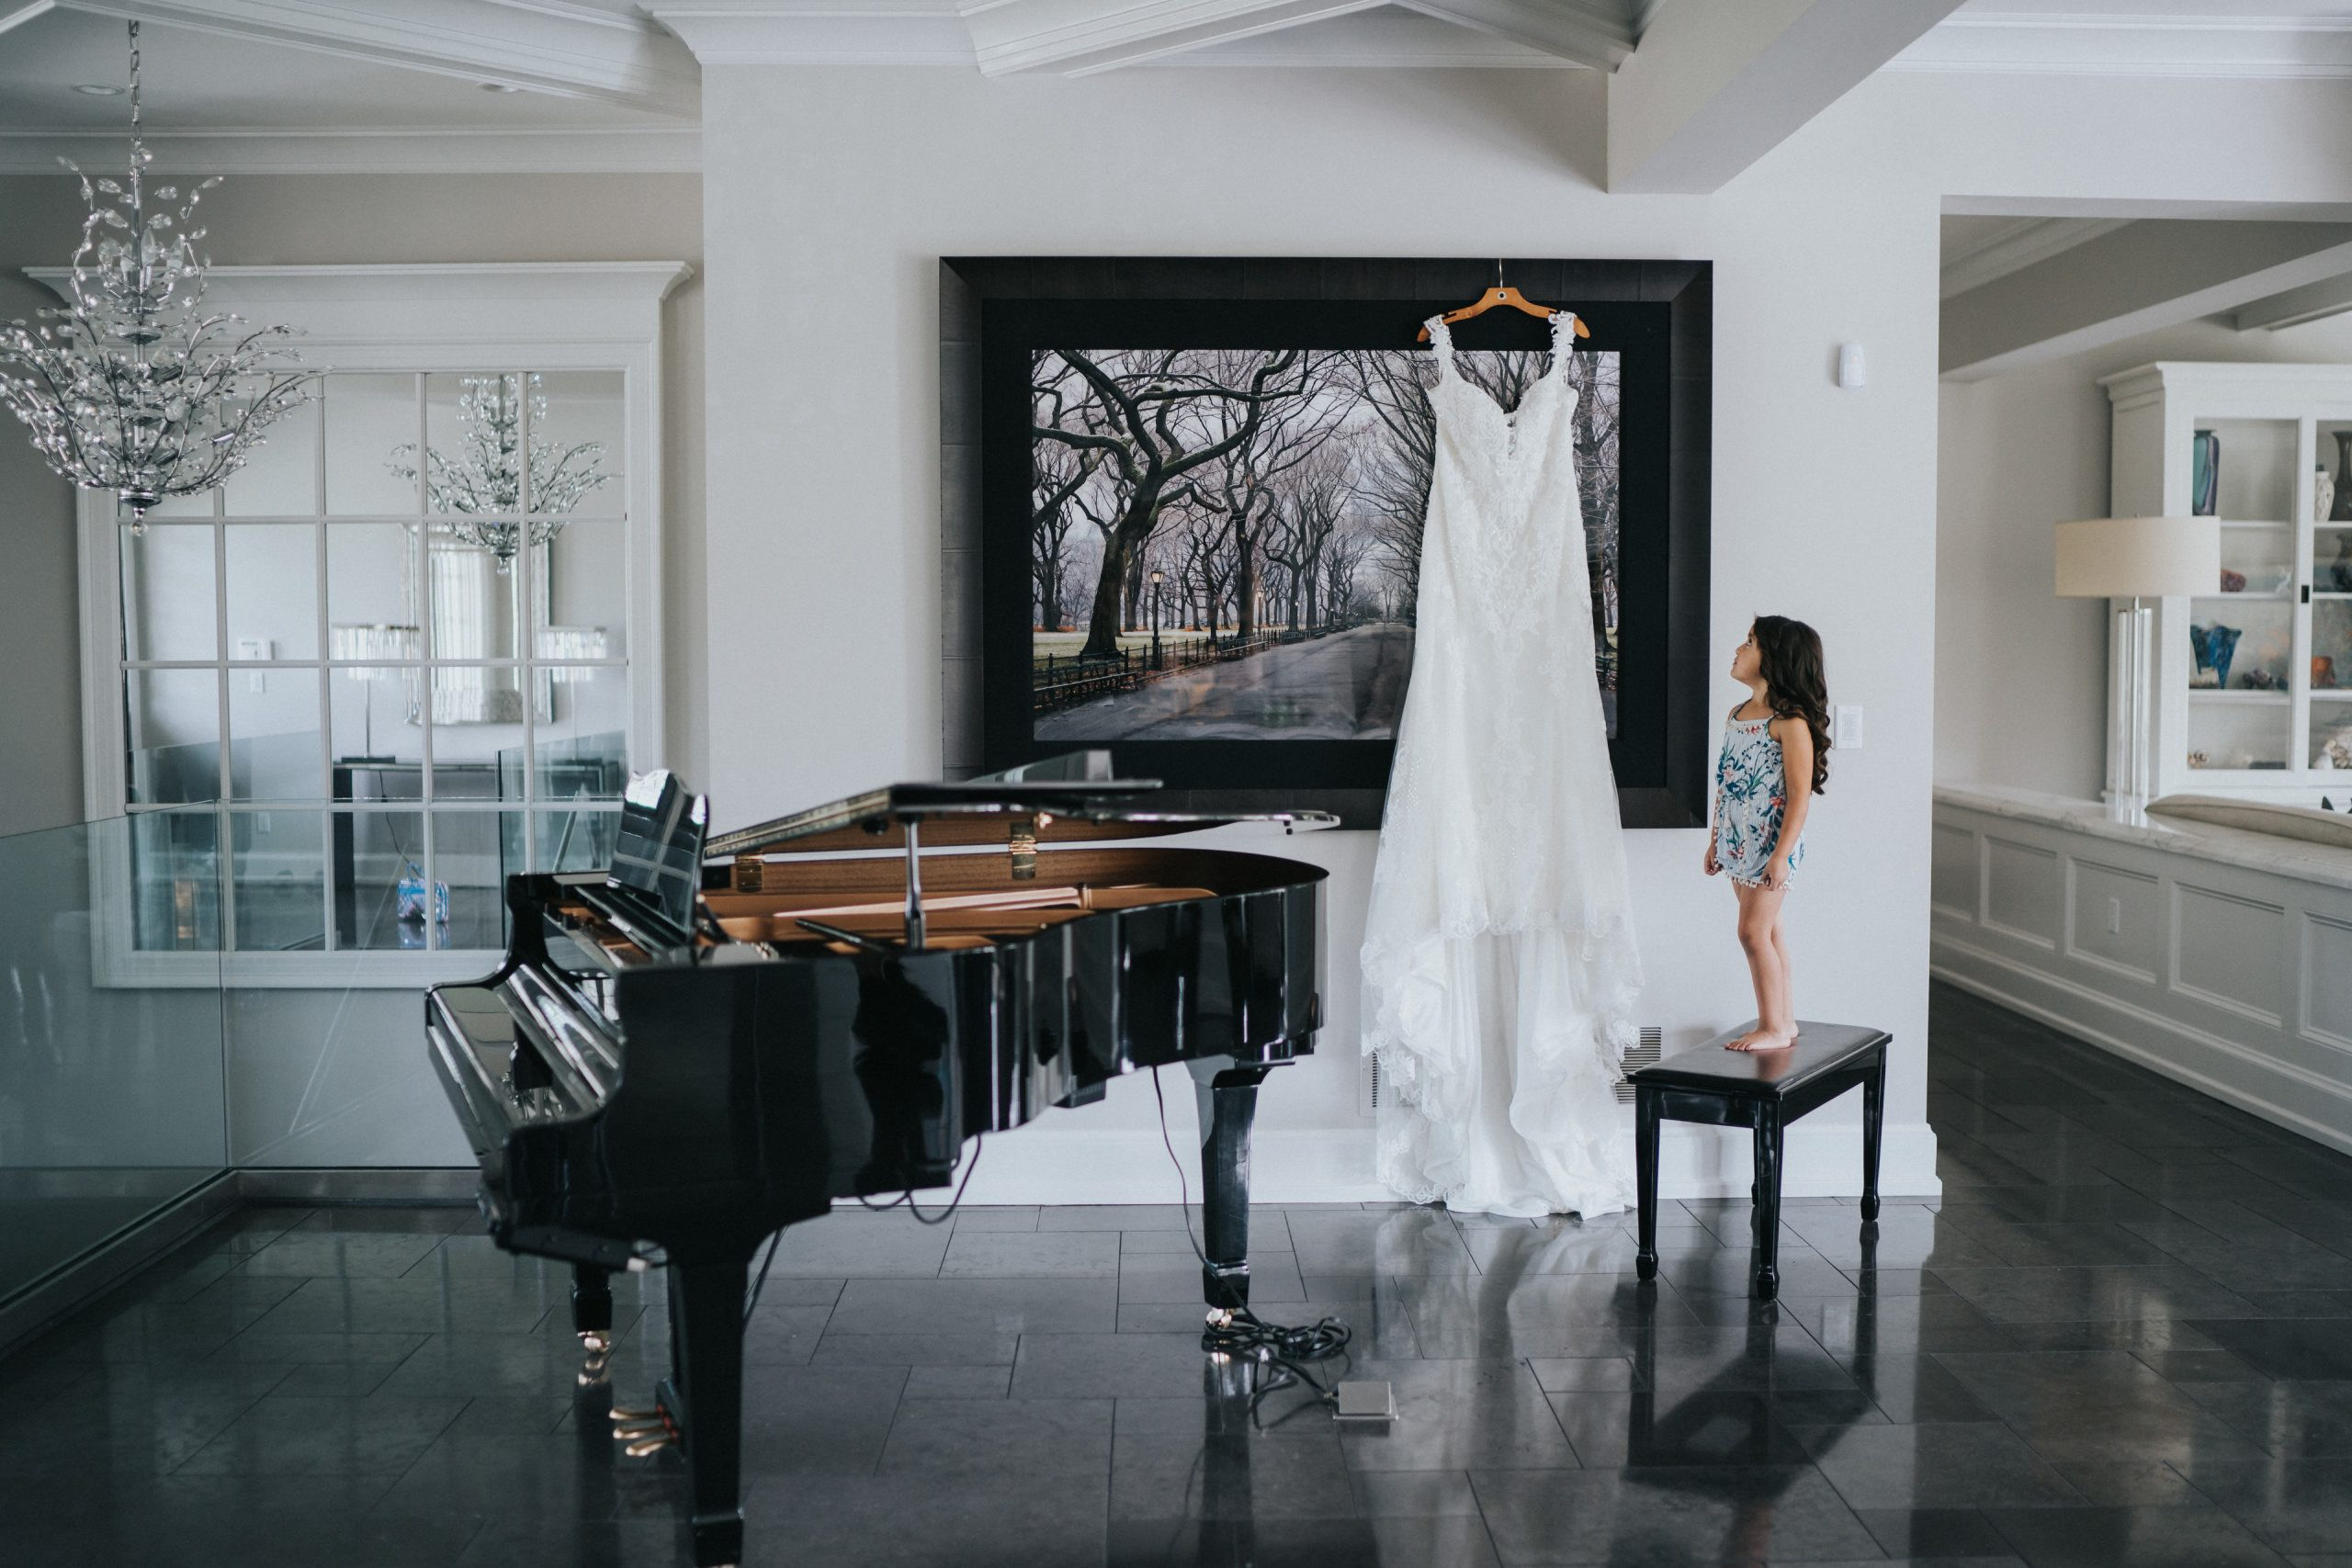 Child looks up to the brides wedding dress